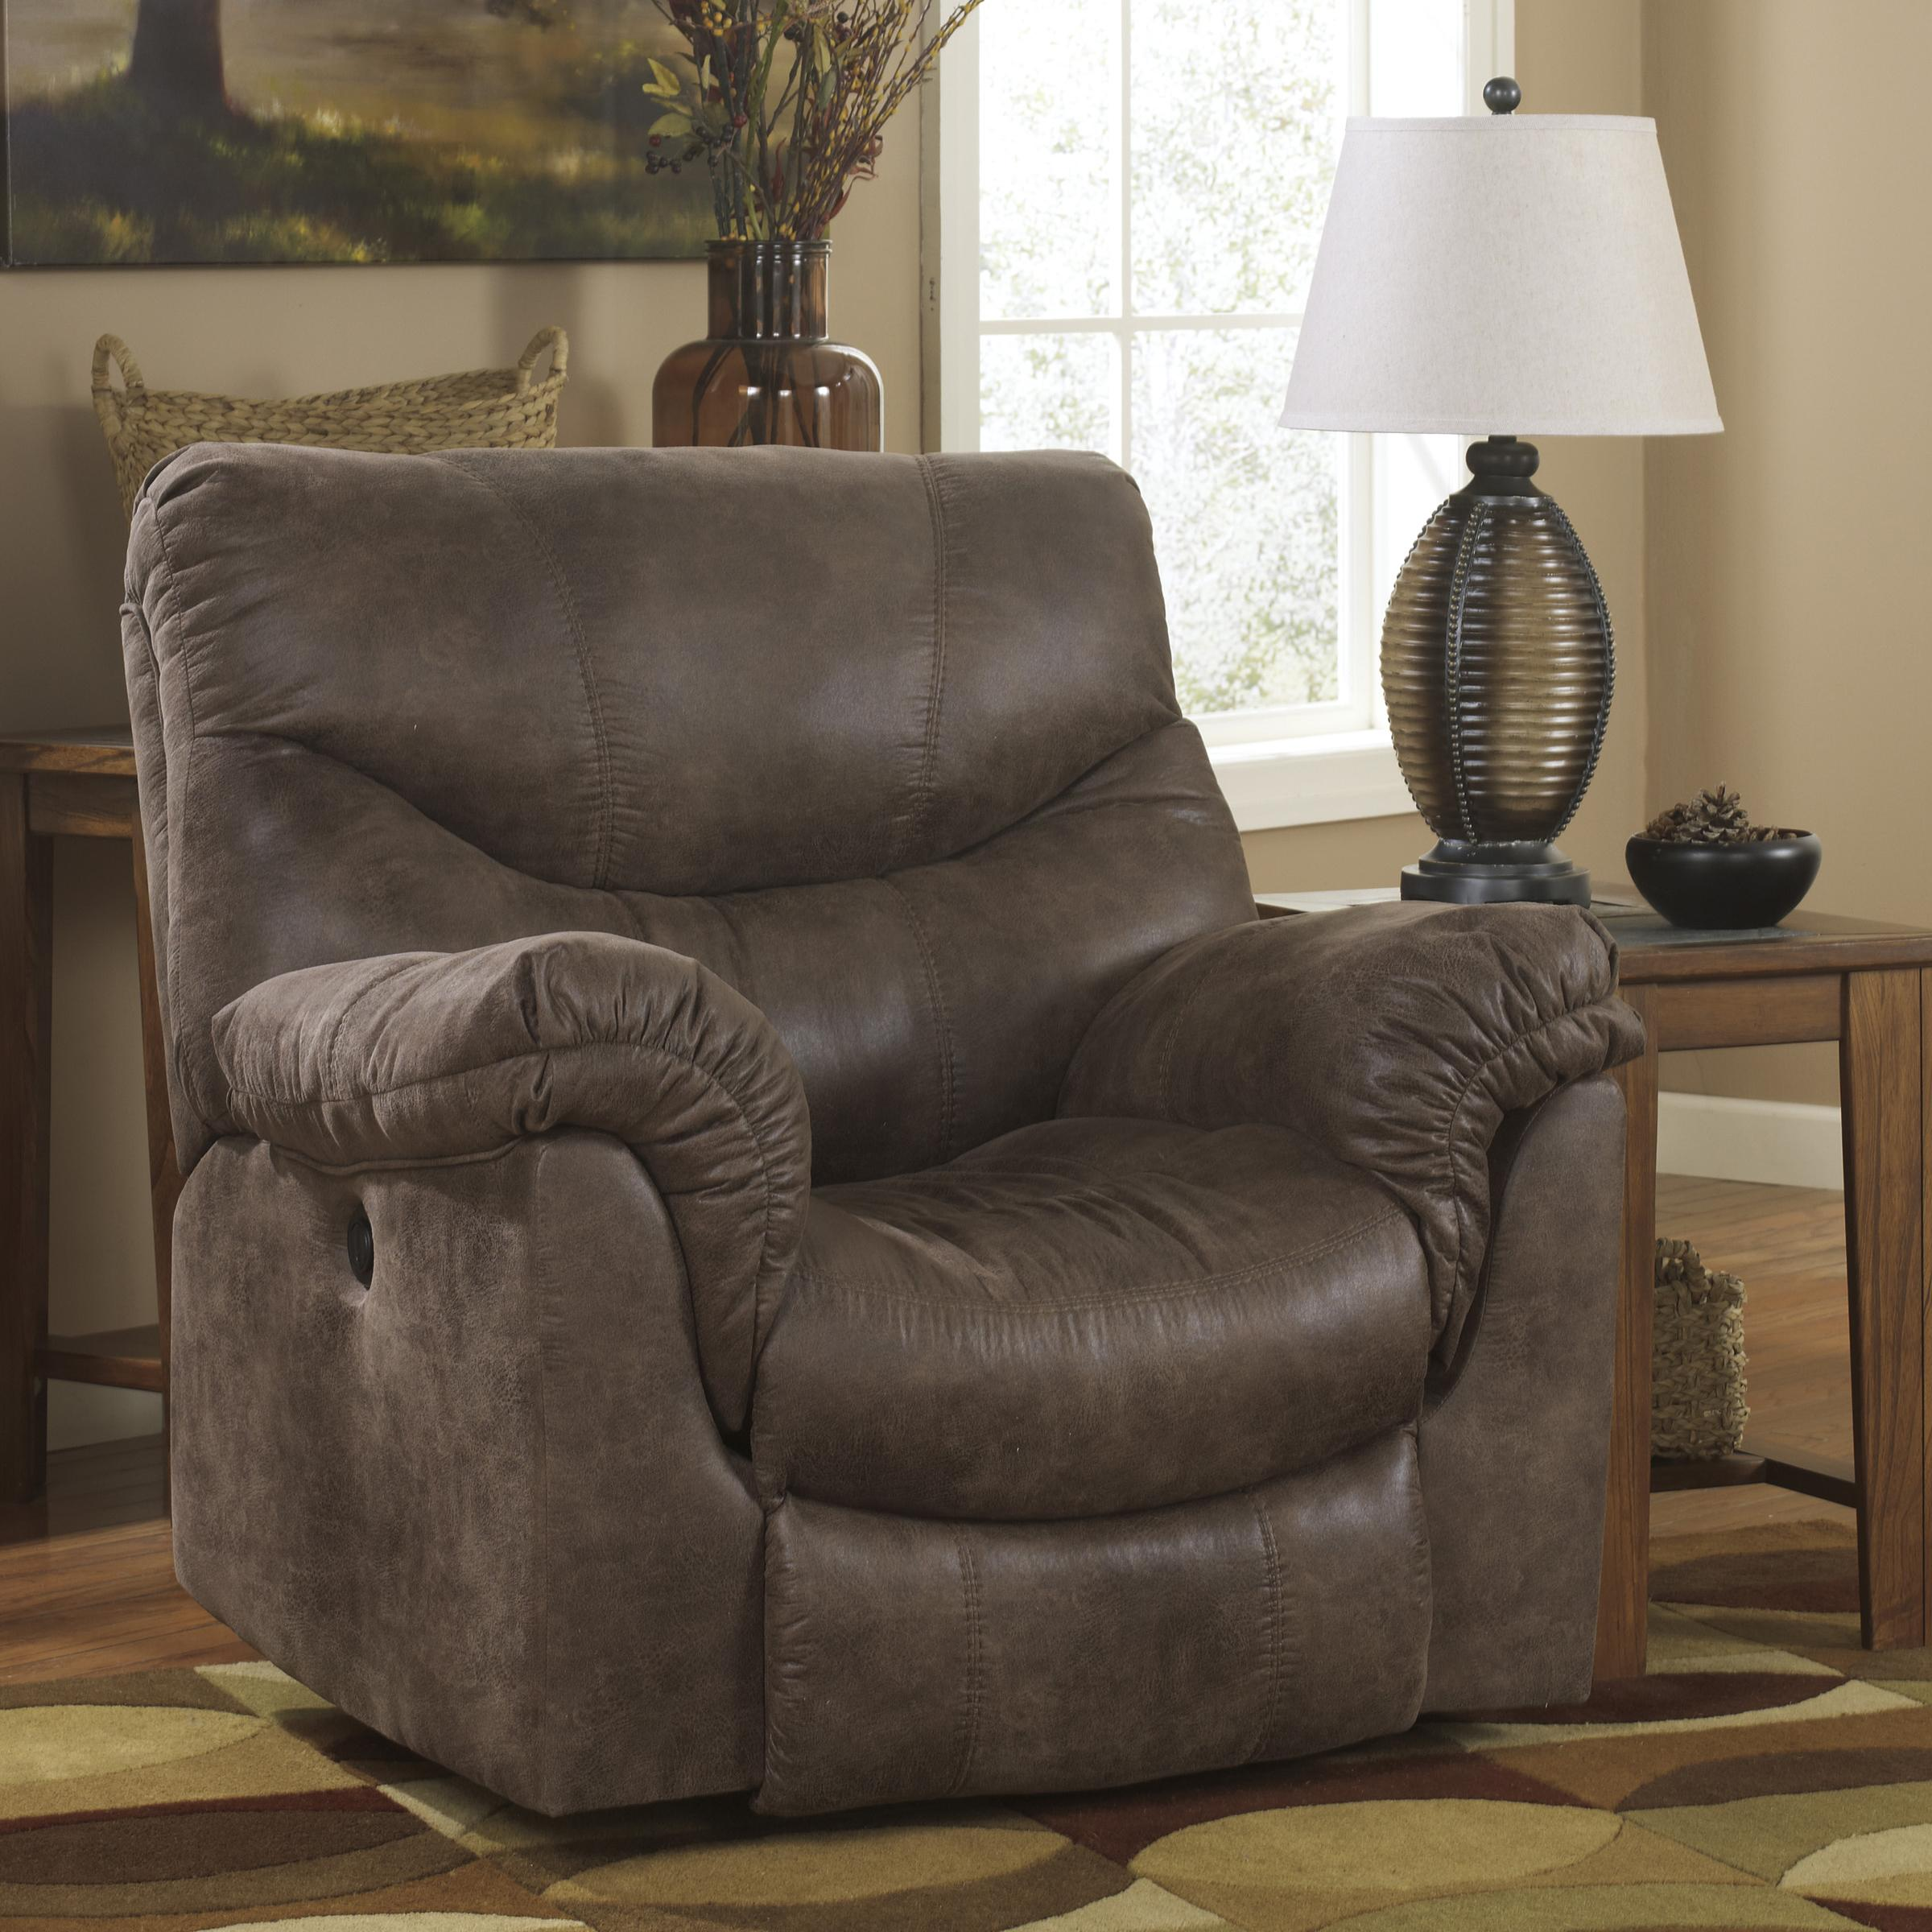 Ashley Furniture Recliners: Signature Design By Ashley Alzena - Gunsmoke Rocker Recliner With Casual Style